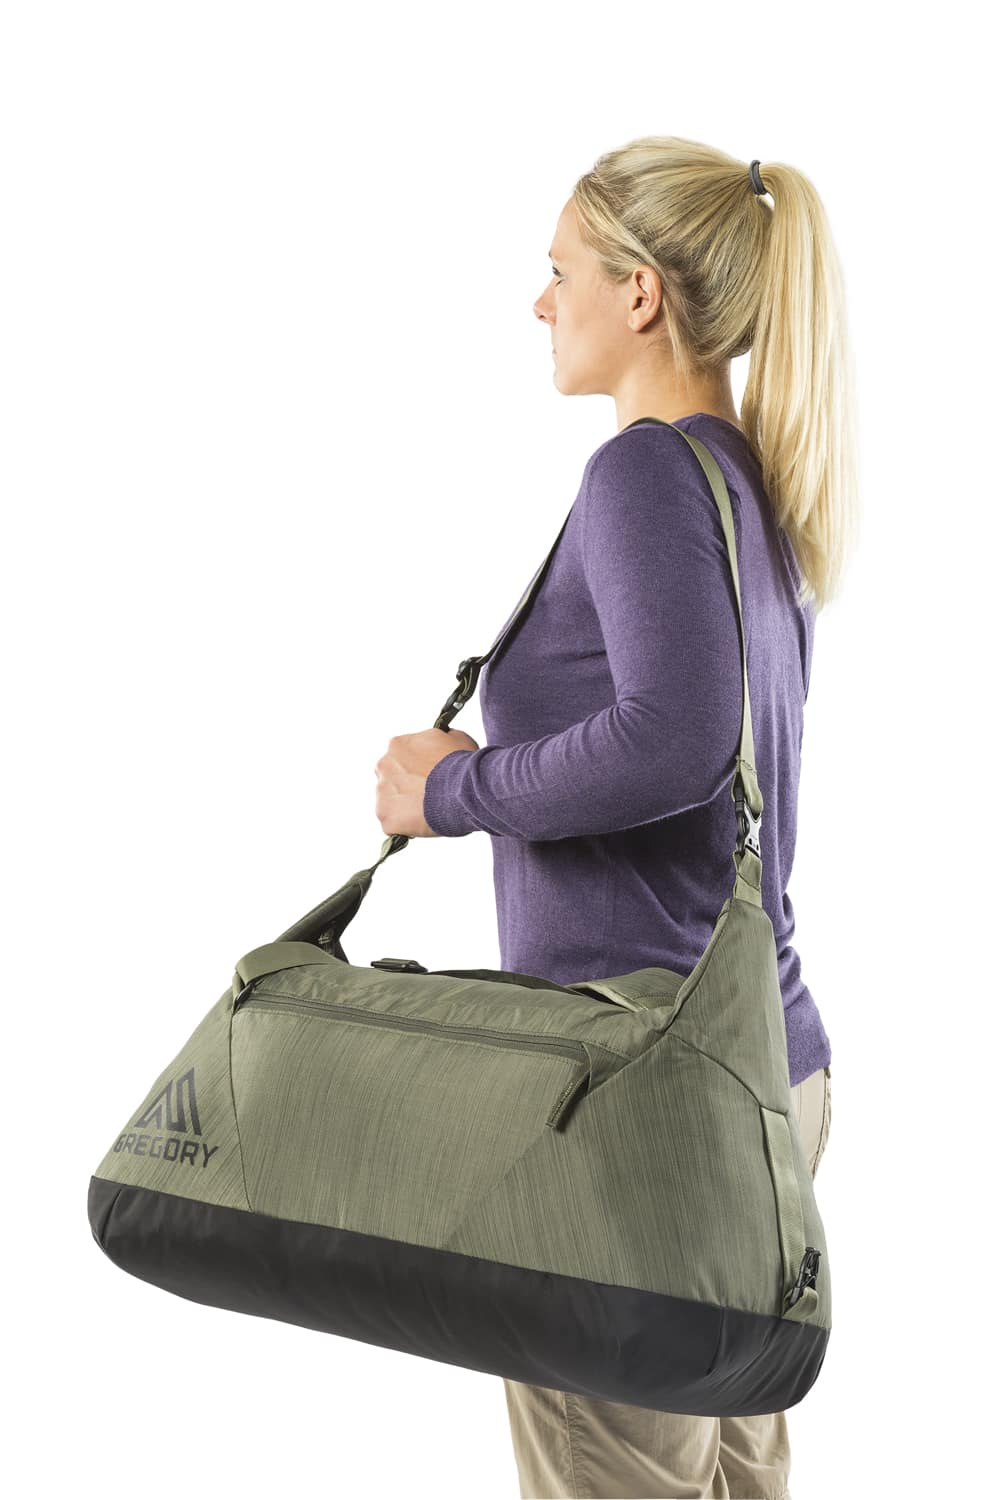 Gregory GMP_Stash-Duffel_detail_Carry-Sling copy3